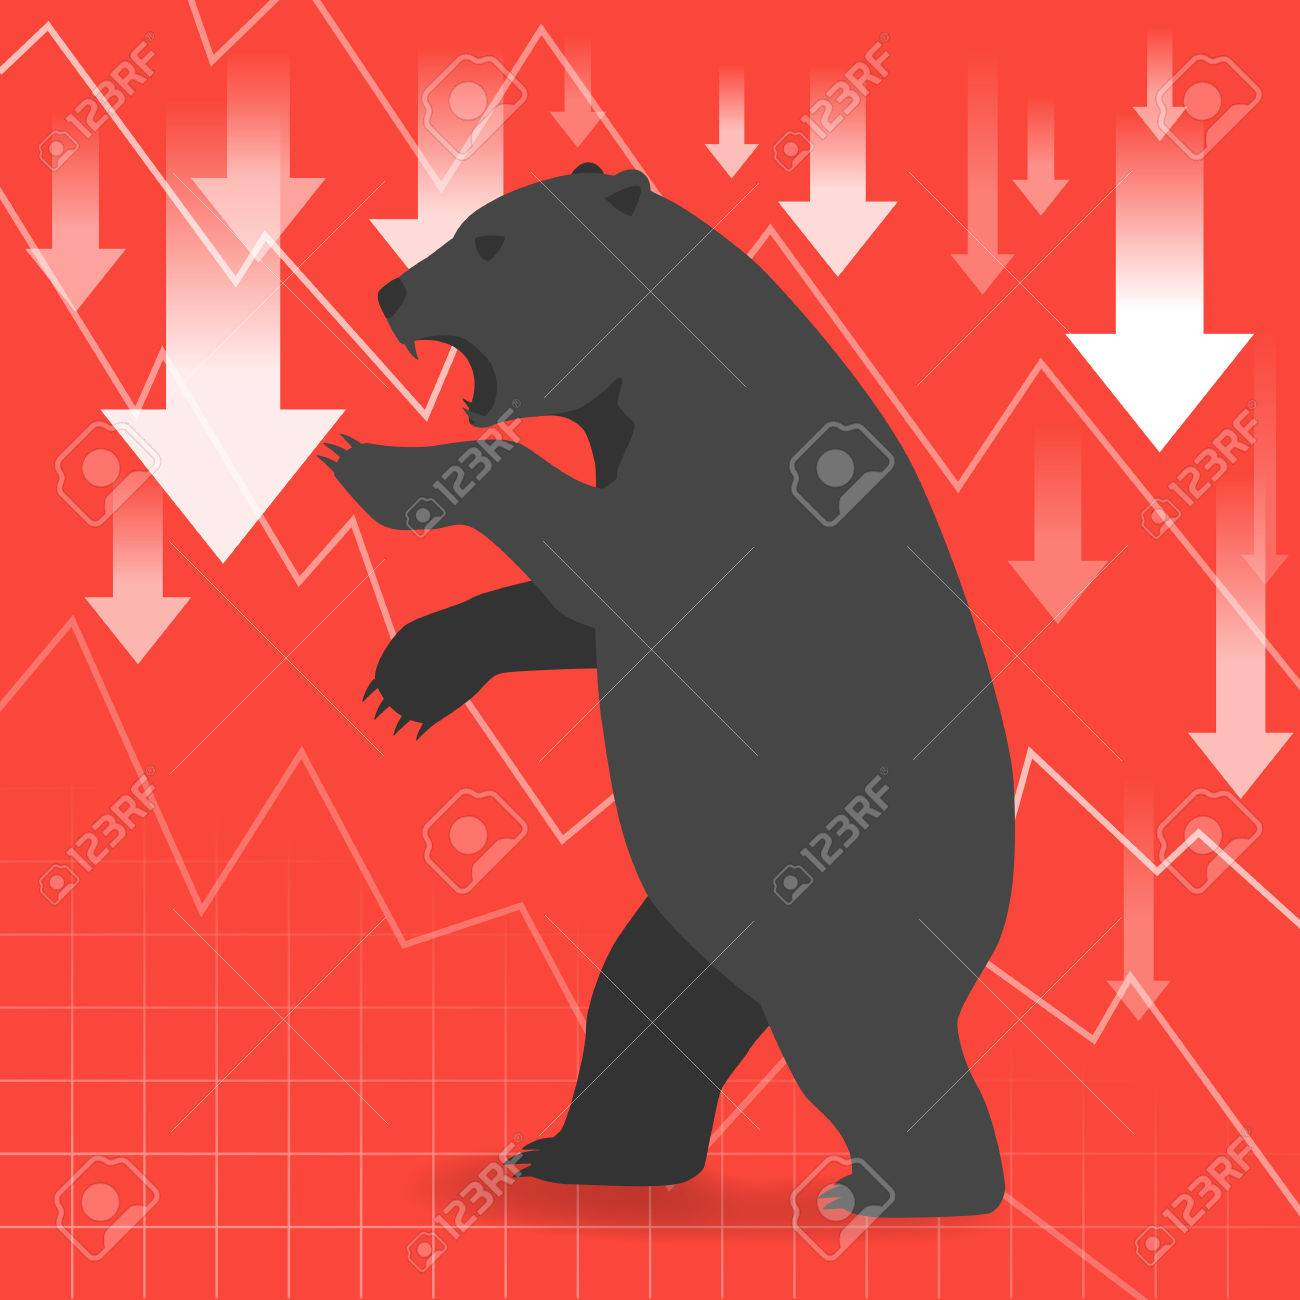 Bear market presents downtrend stock market concept with graph in background - 44441925